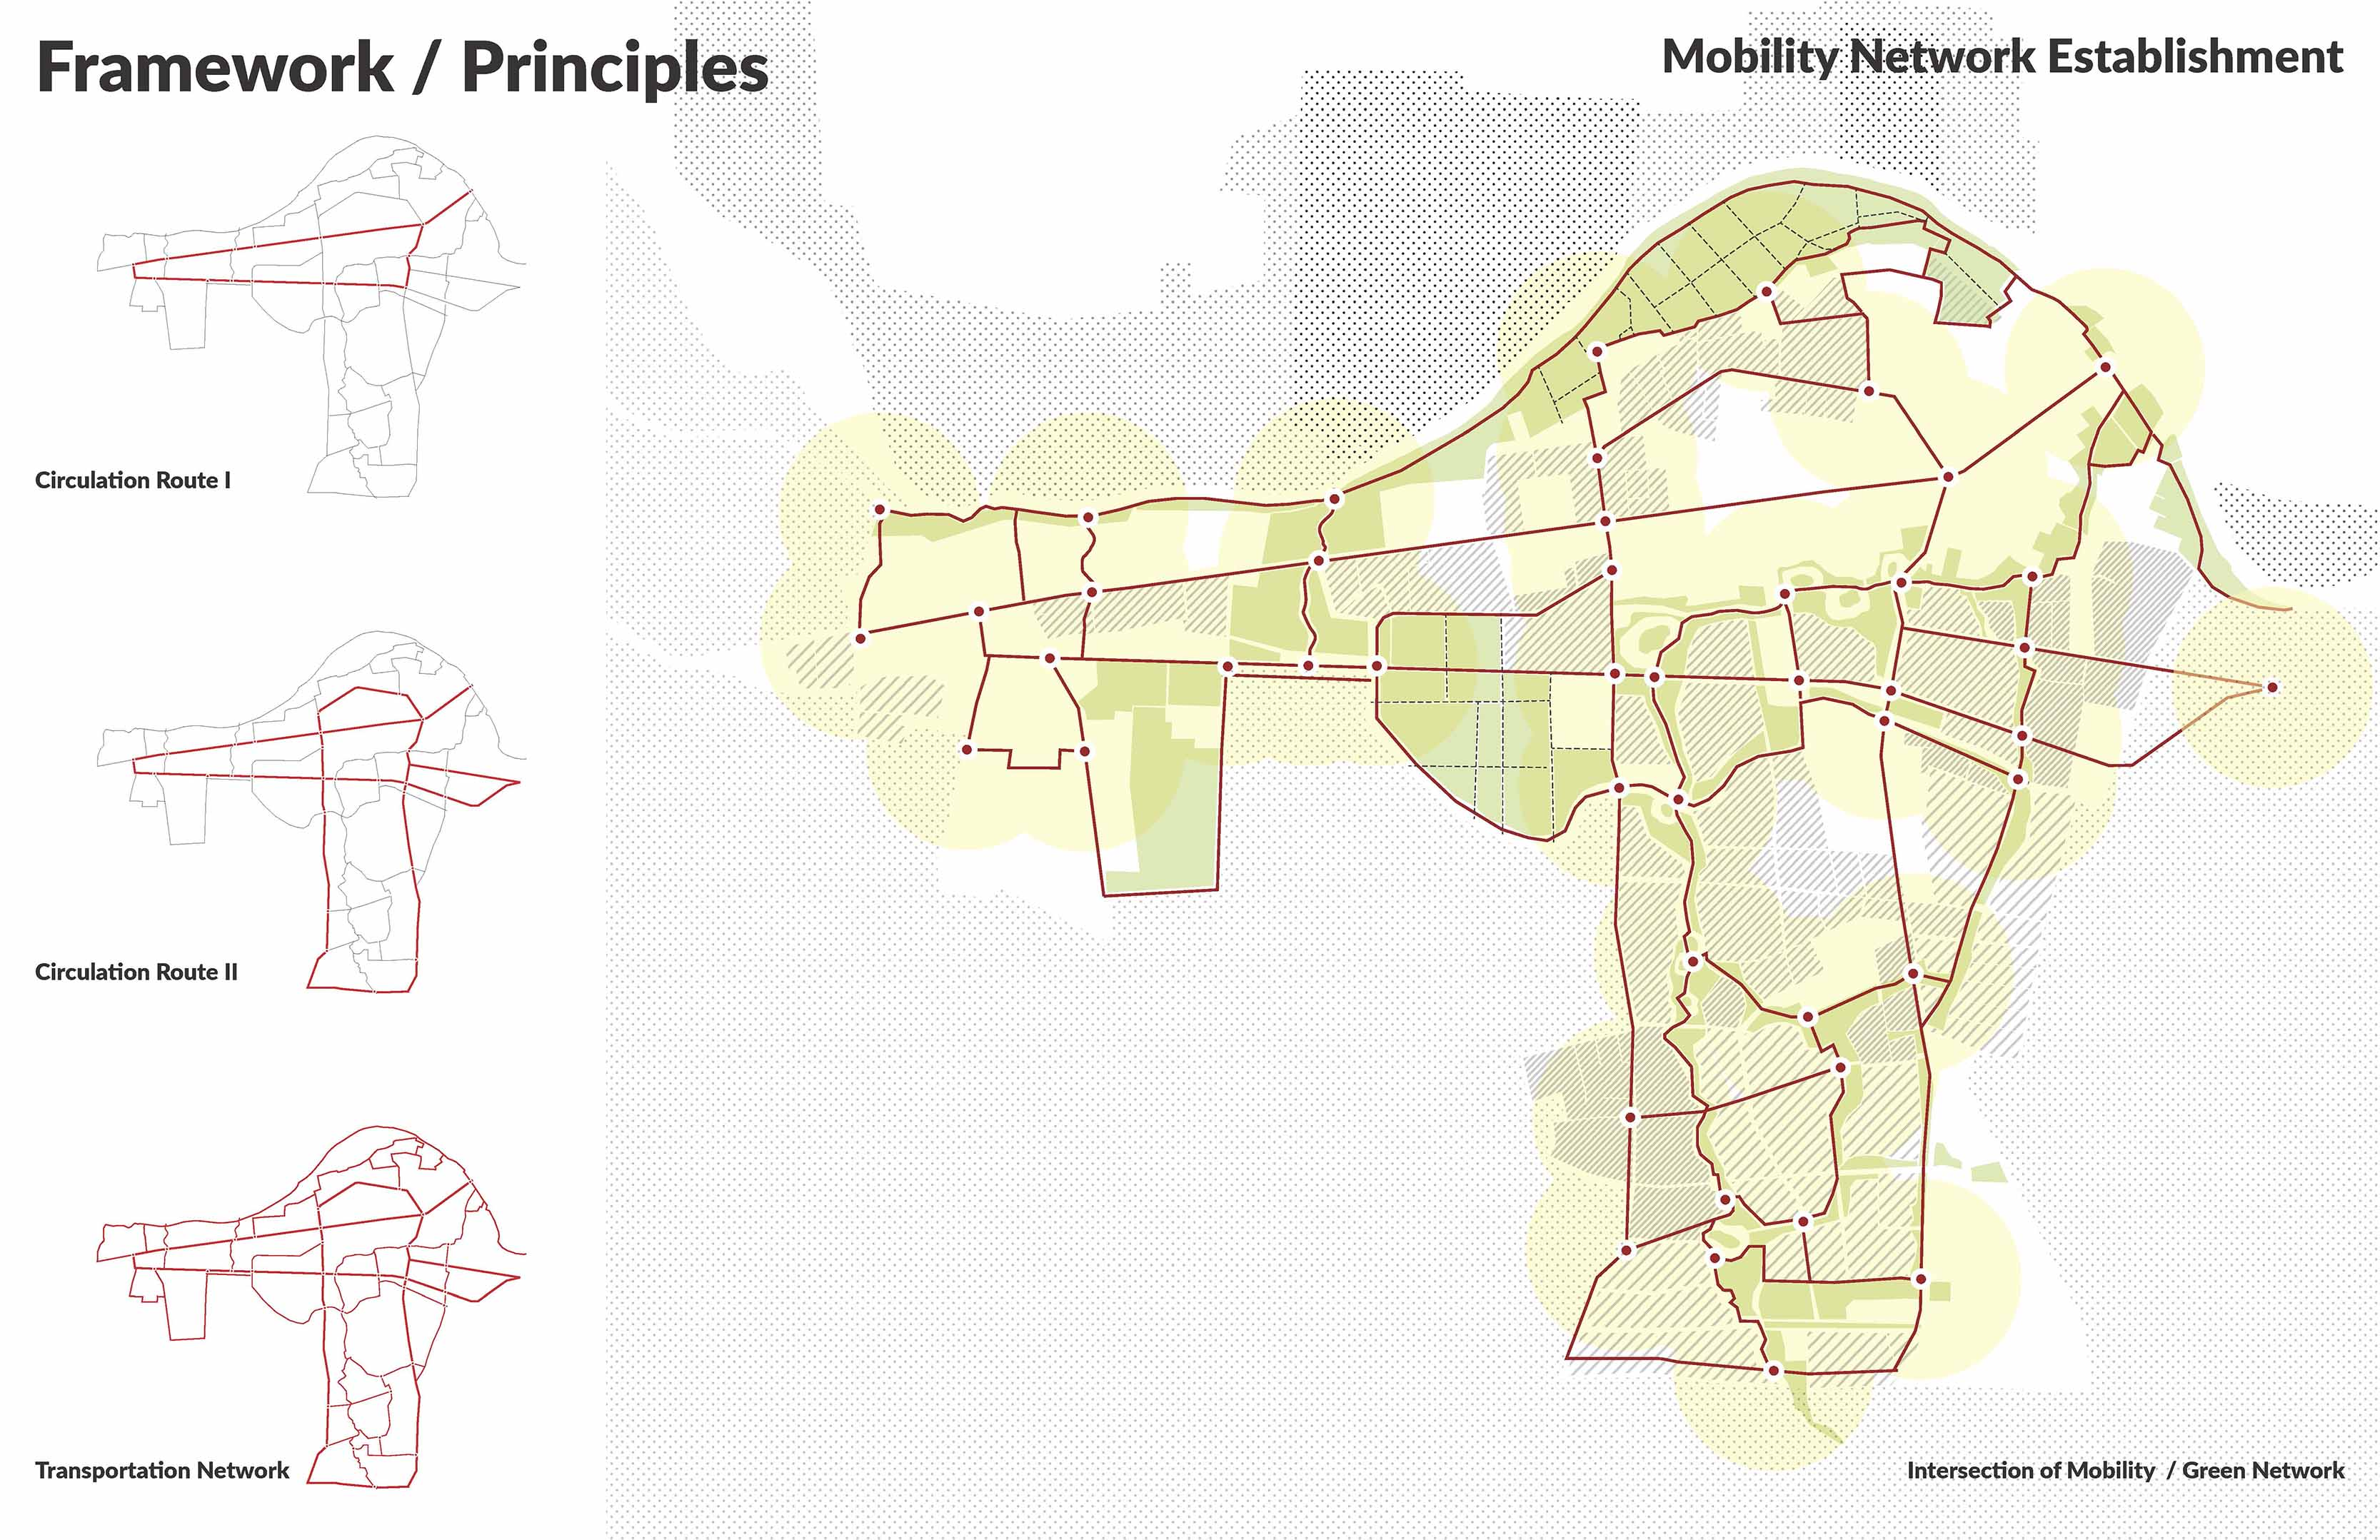 Hybrid Urban Structure: Mobility Network